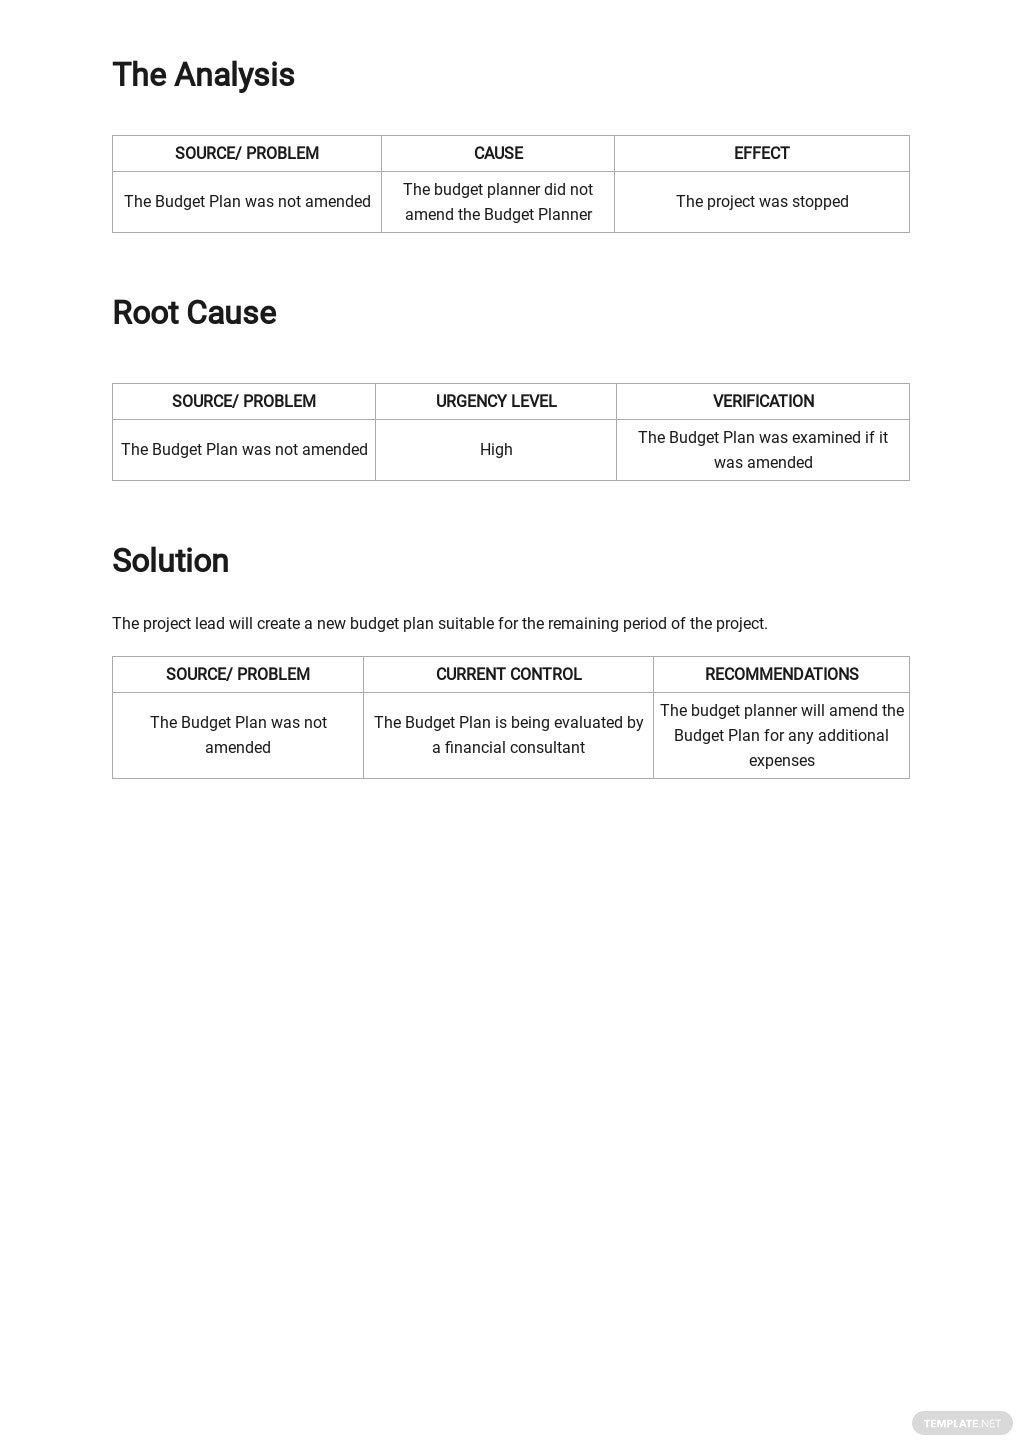 Free Simple Root Cause Analysis Template 2.jpe